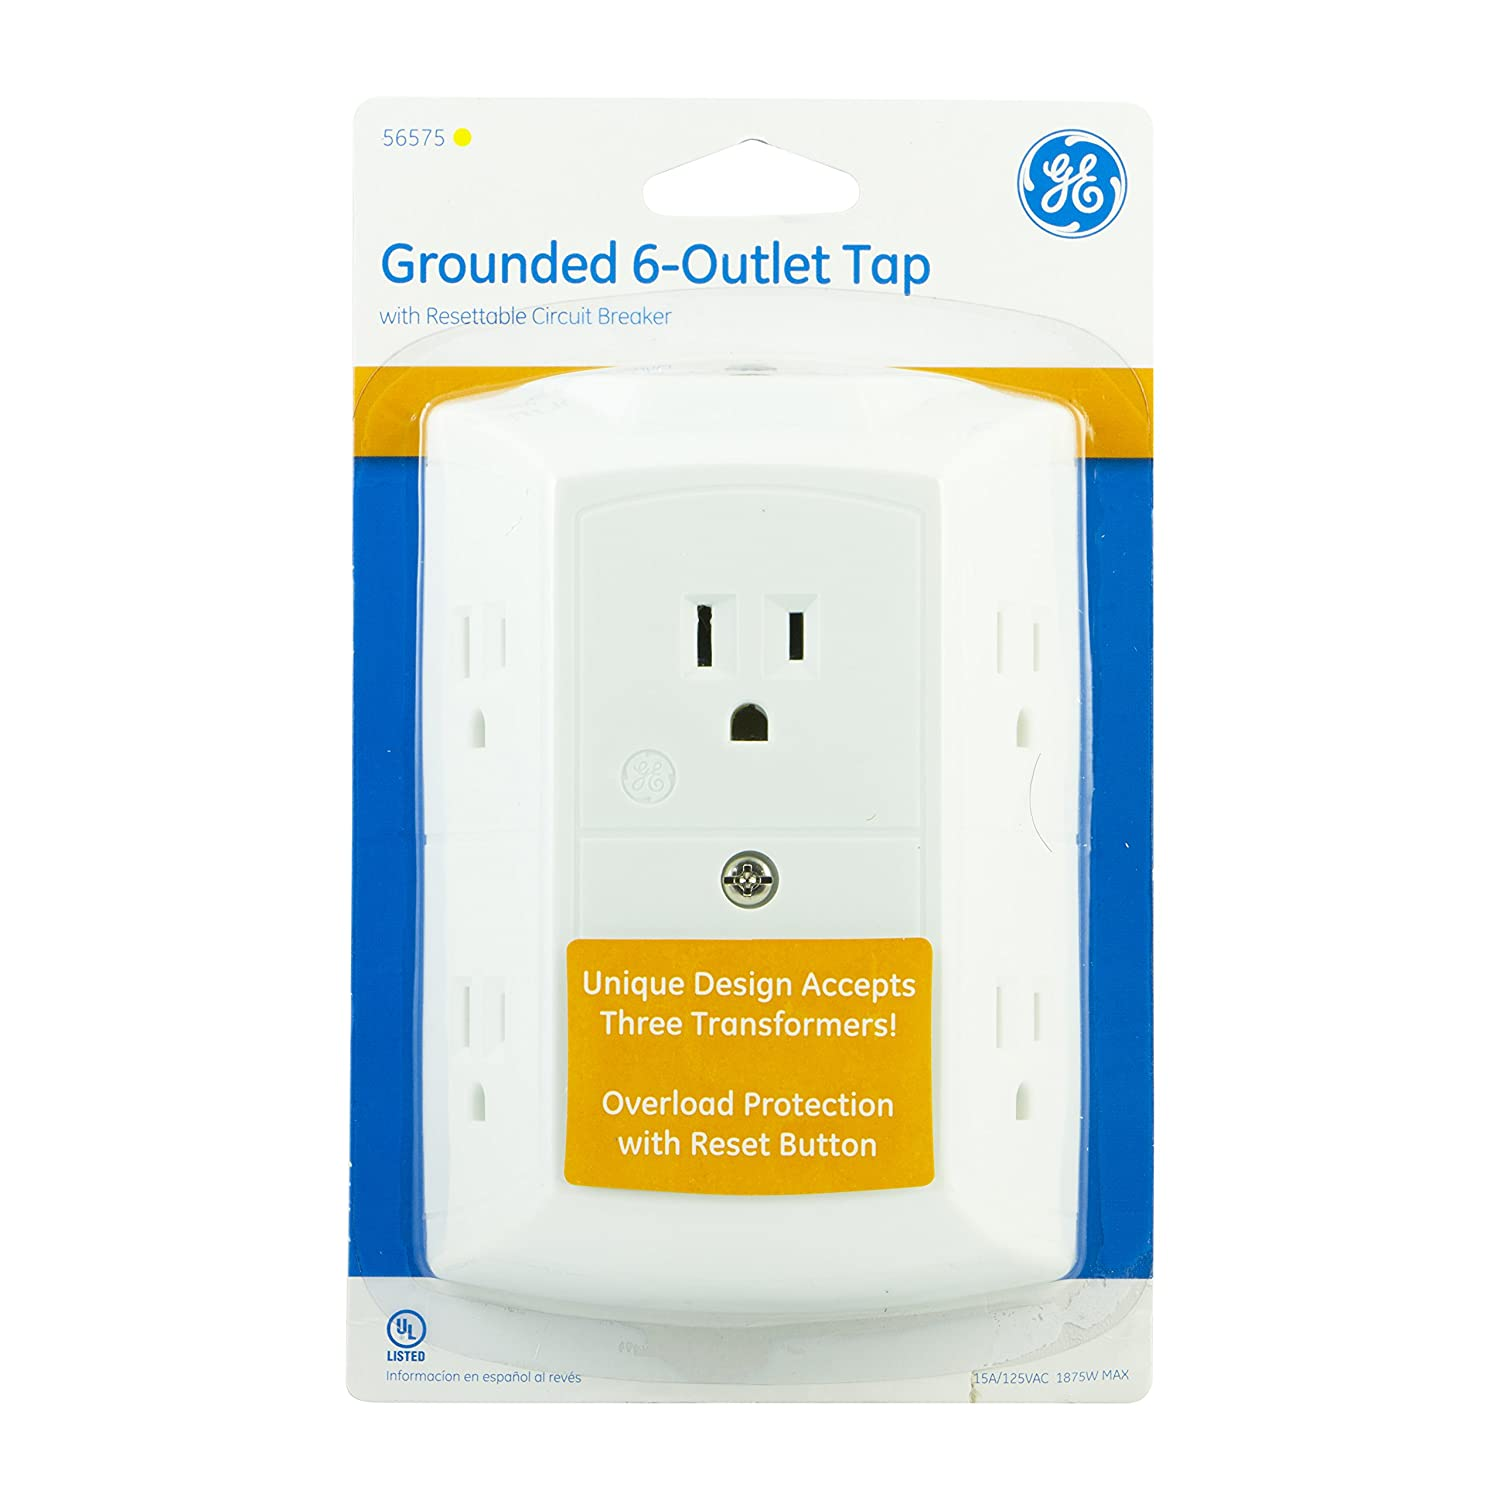 Ge Grounded 6 Outlet Tap With Resettable Circuit Breaker White 15a Diy Electrician Part Six Breakers And An Arc Fault 125vac Max Ul Listed 56575 Electrical Multi Outlets